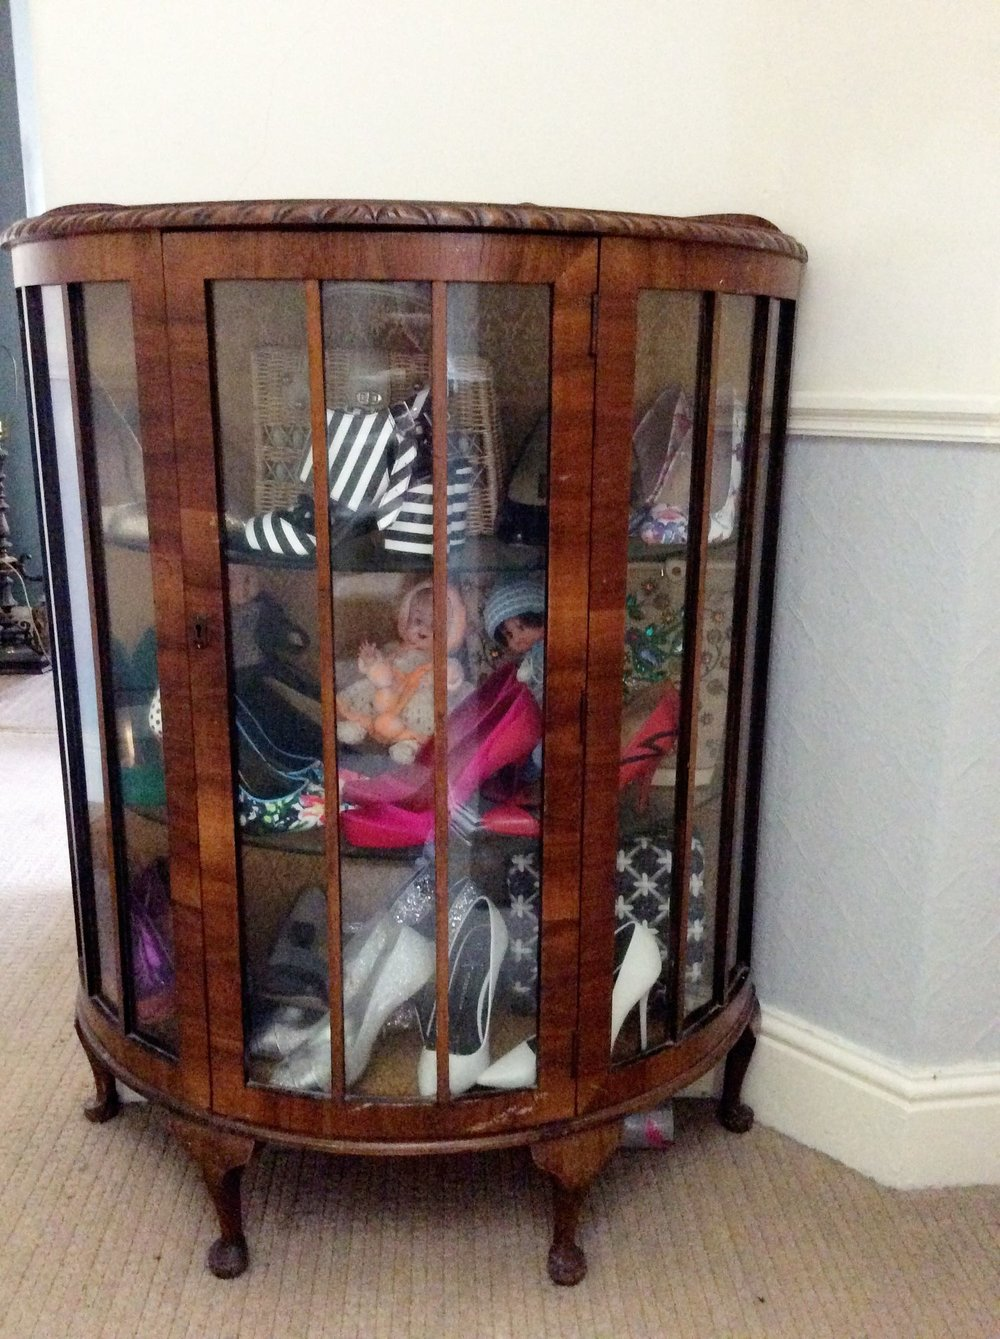 Originally a dark brown wood with an unflattering brocade lining.